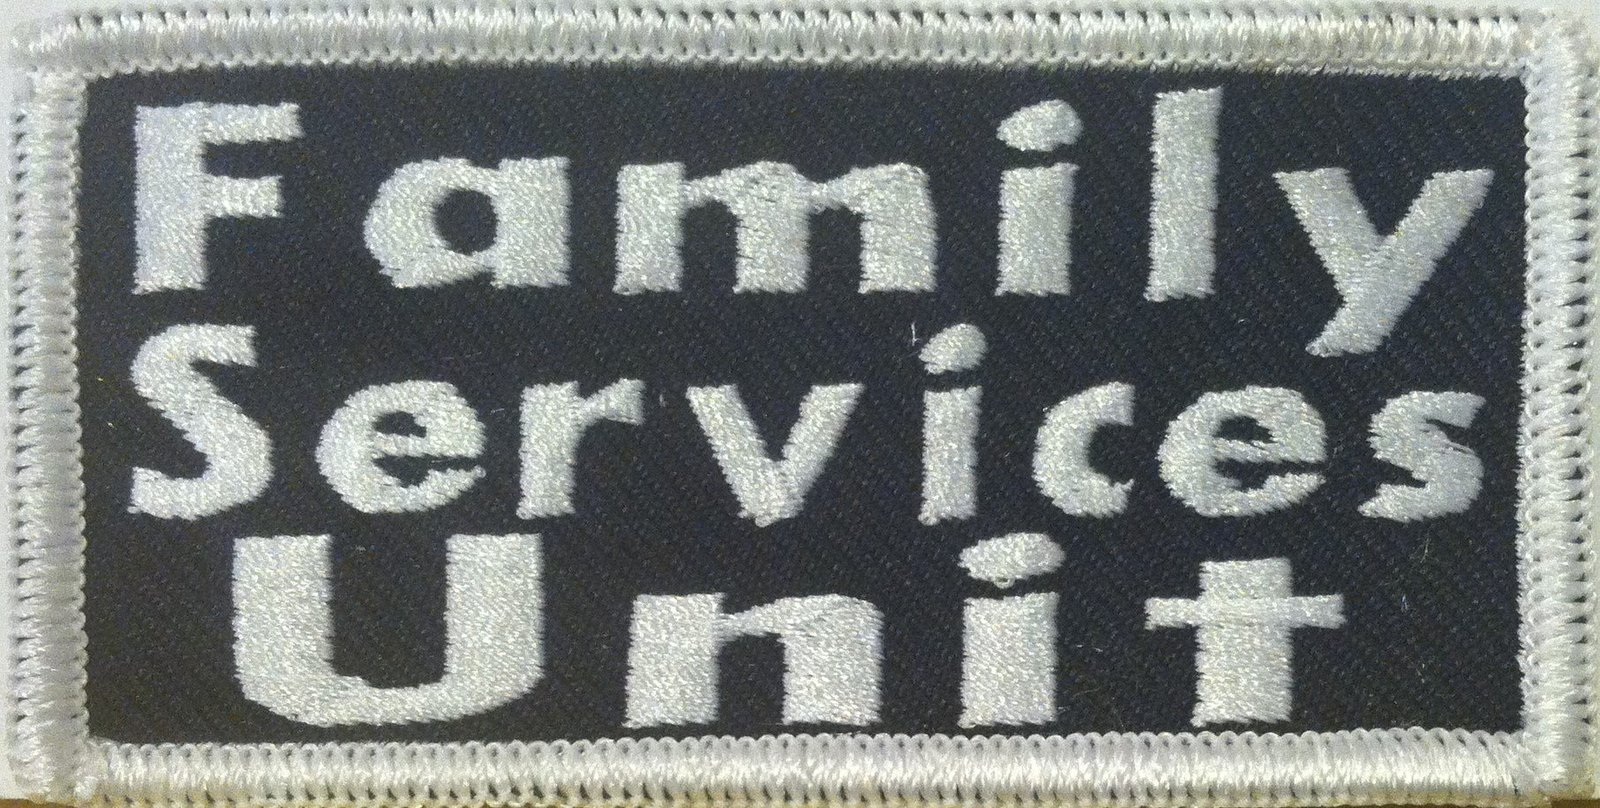 Primary image for Family Services Unit Iron On Patch